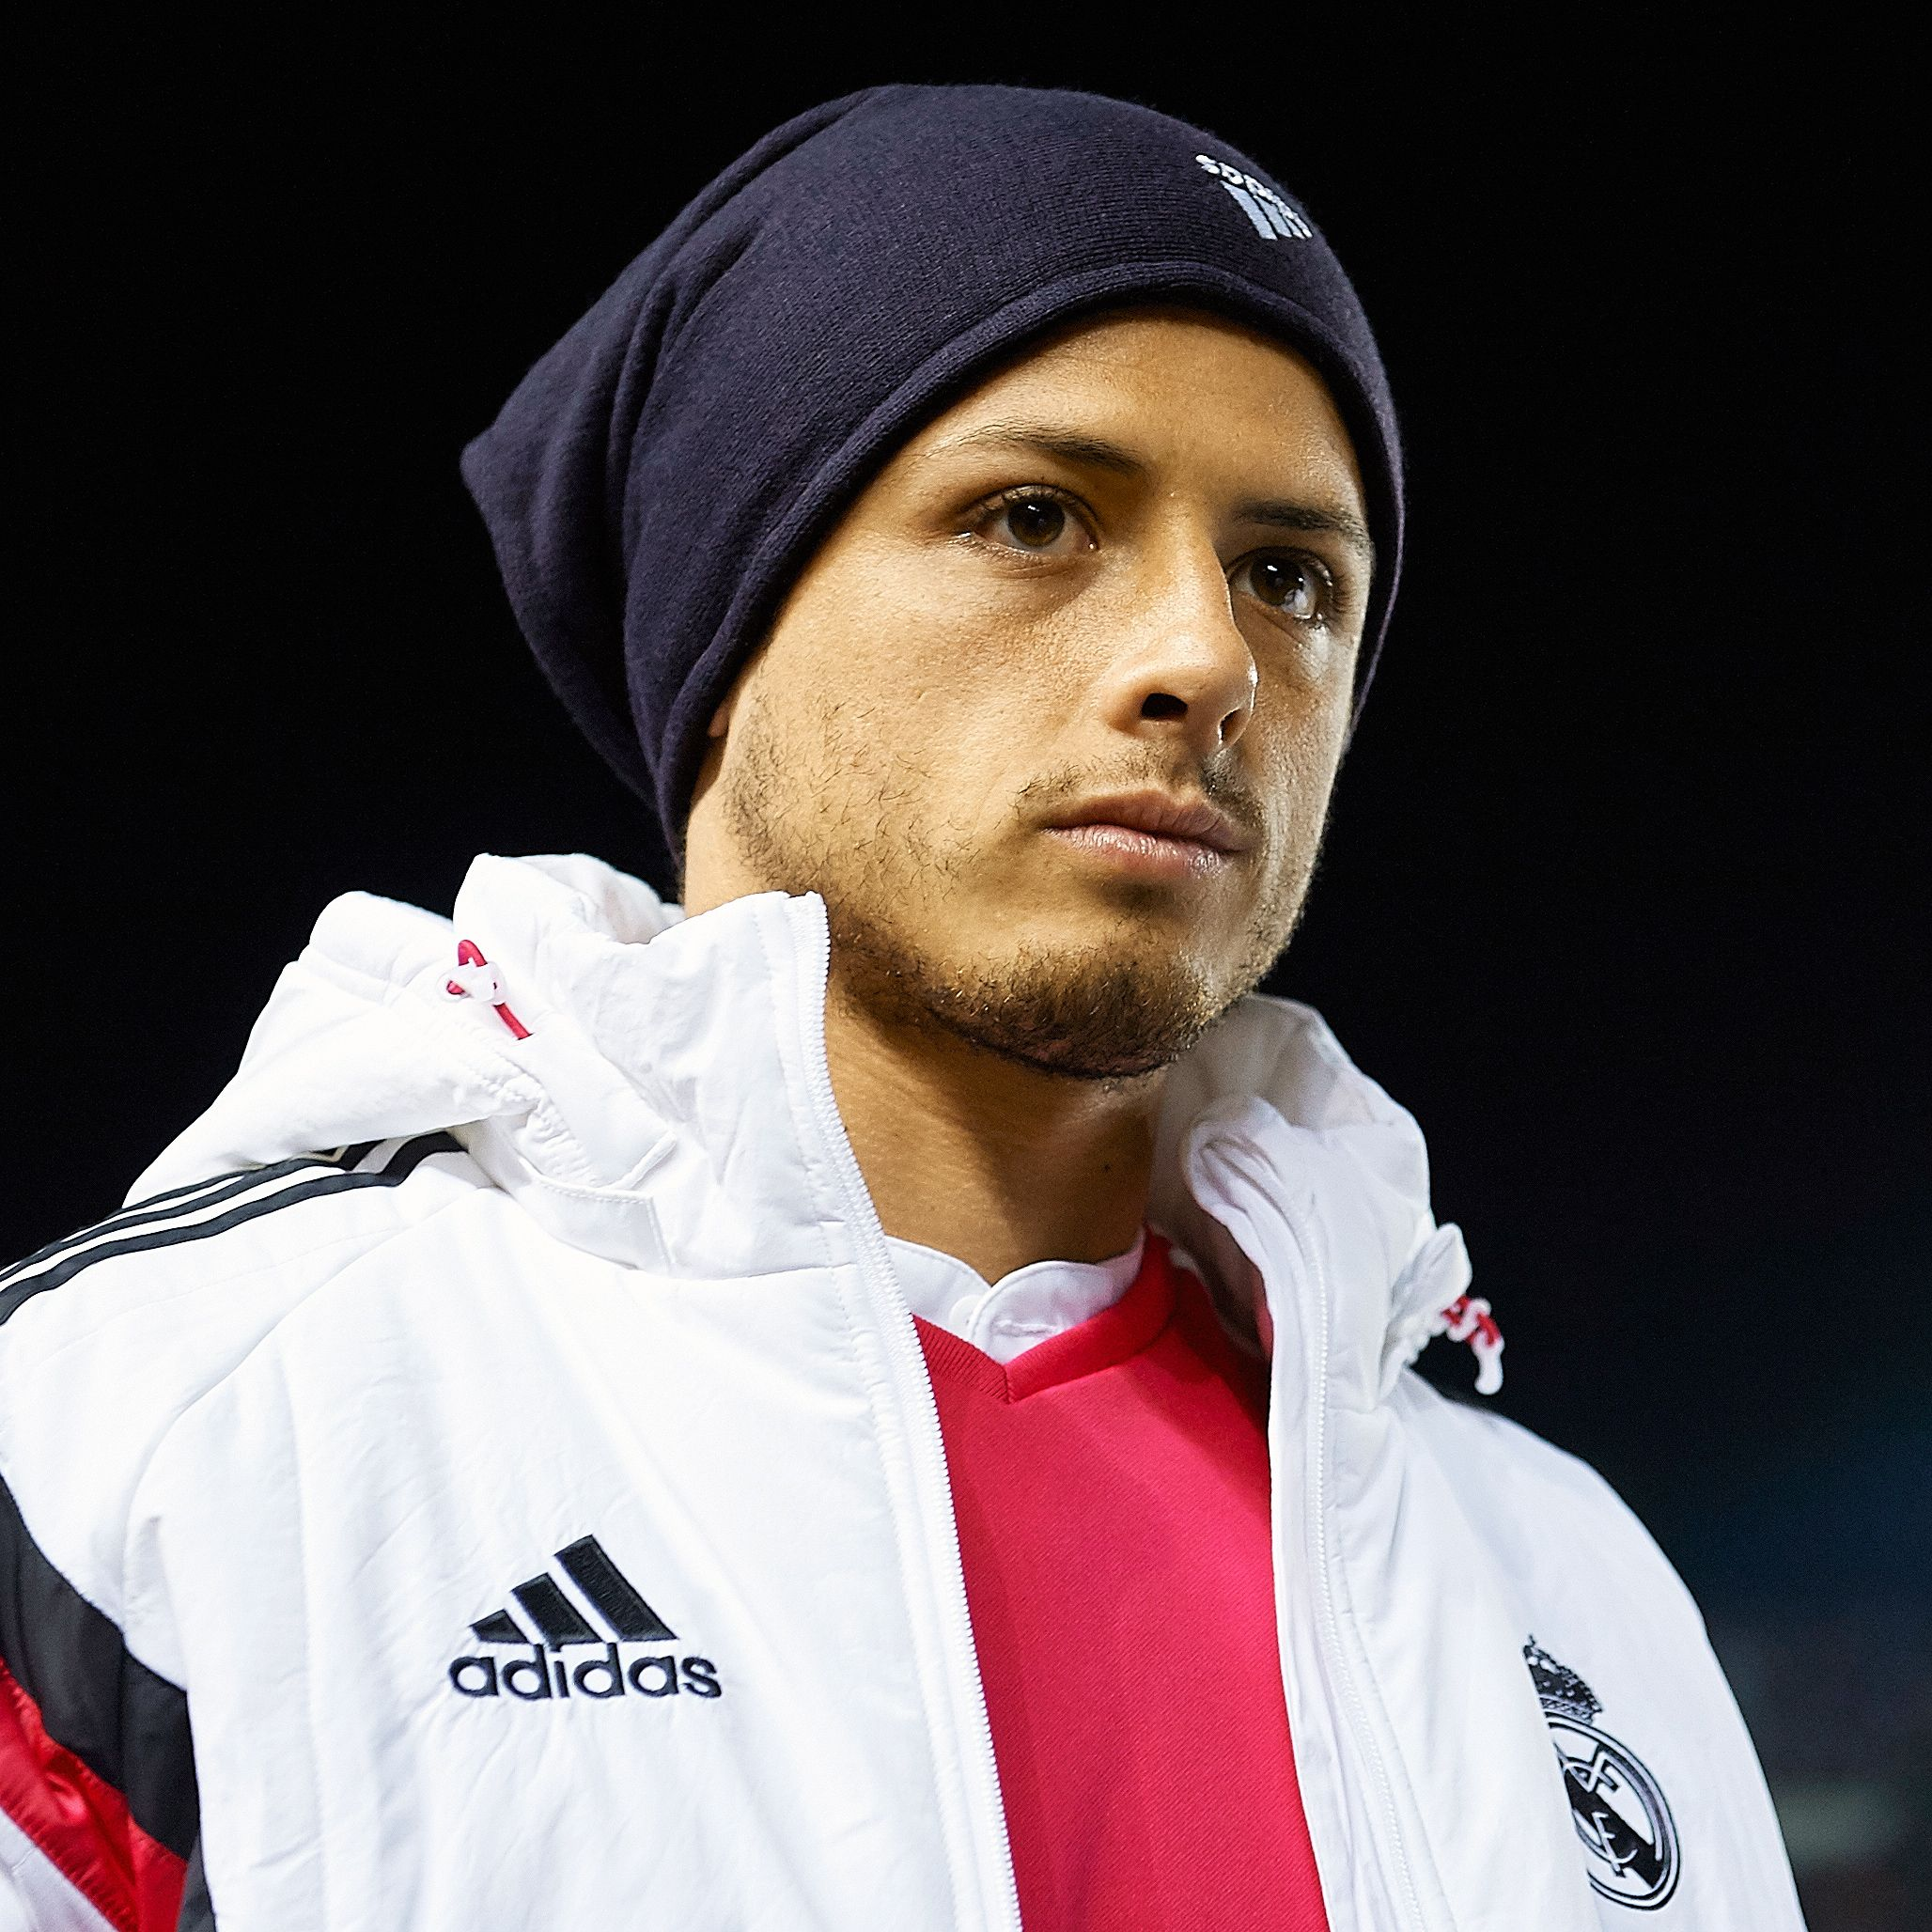 Despite little playing time at Real Madrid, Javier Hernandez is regularly called up to the Mexican national team.